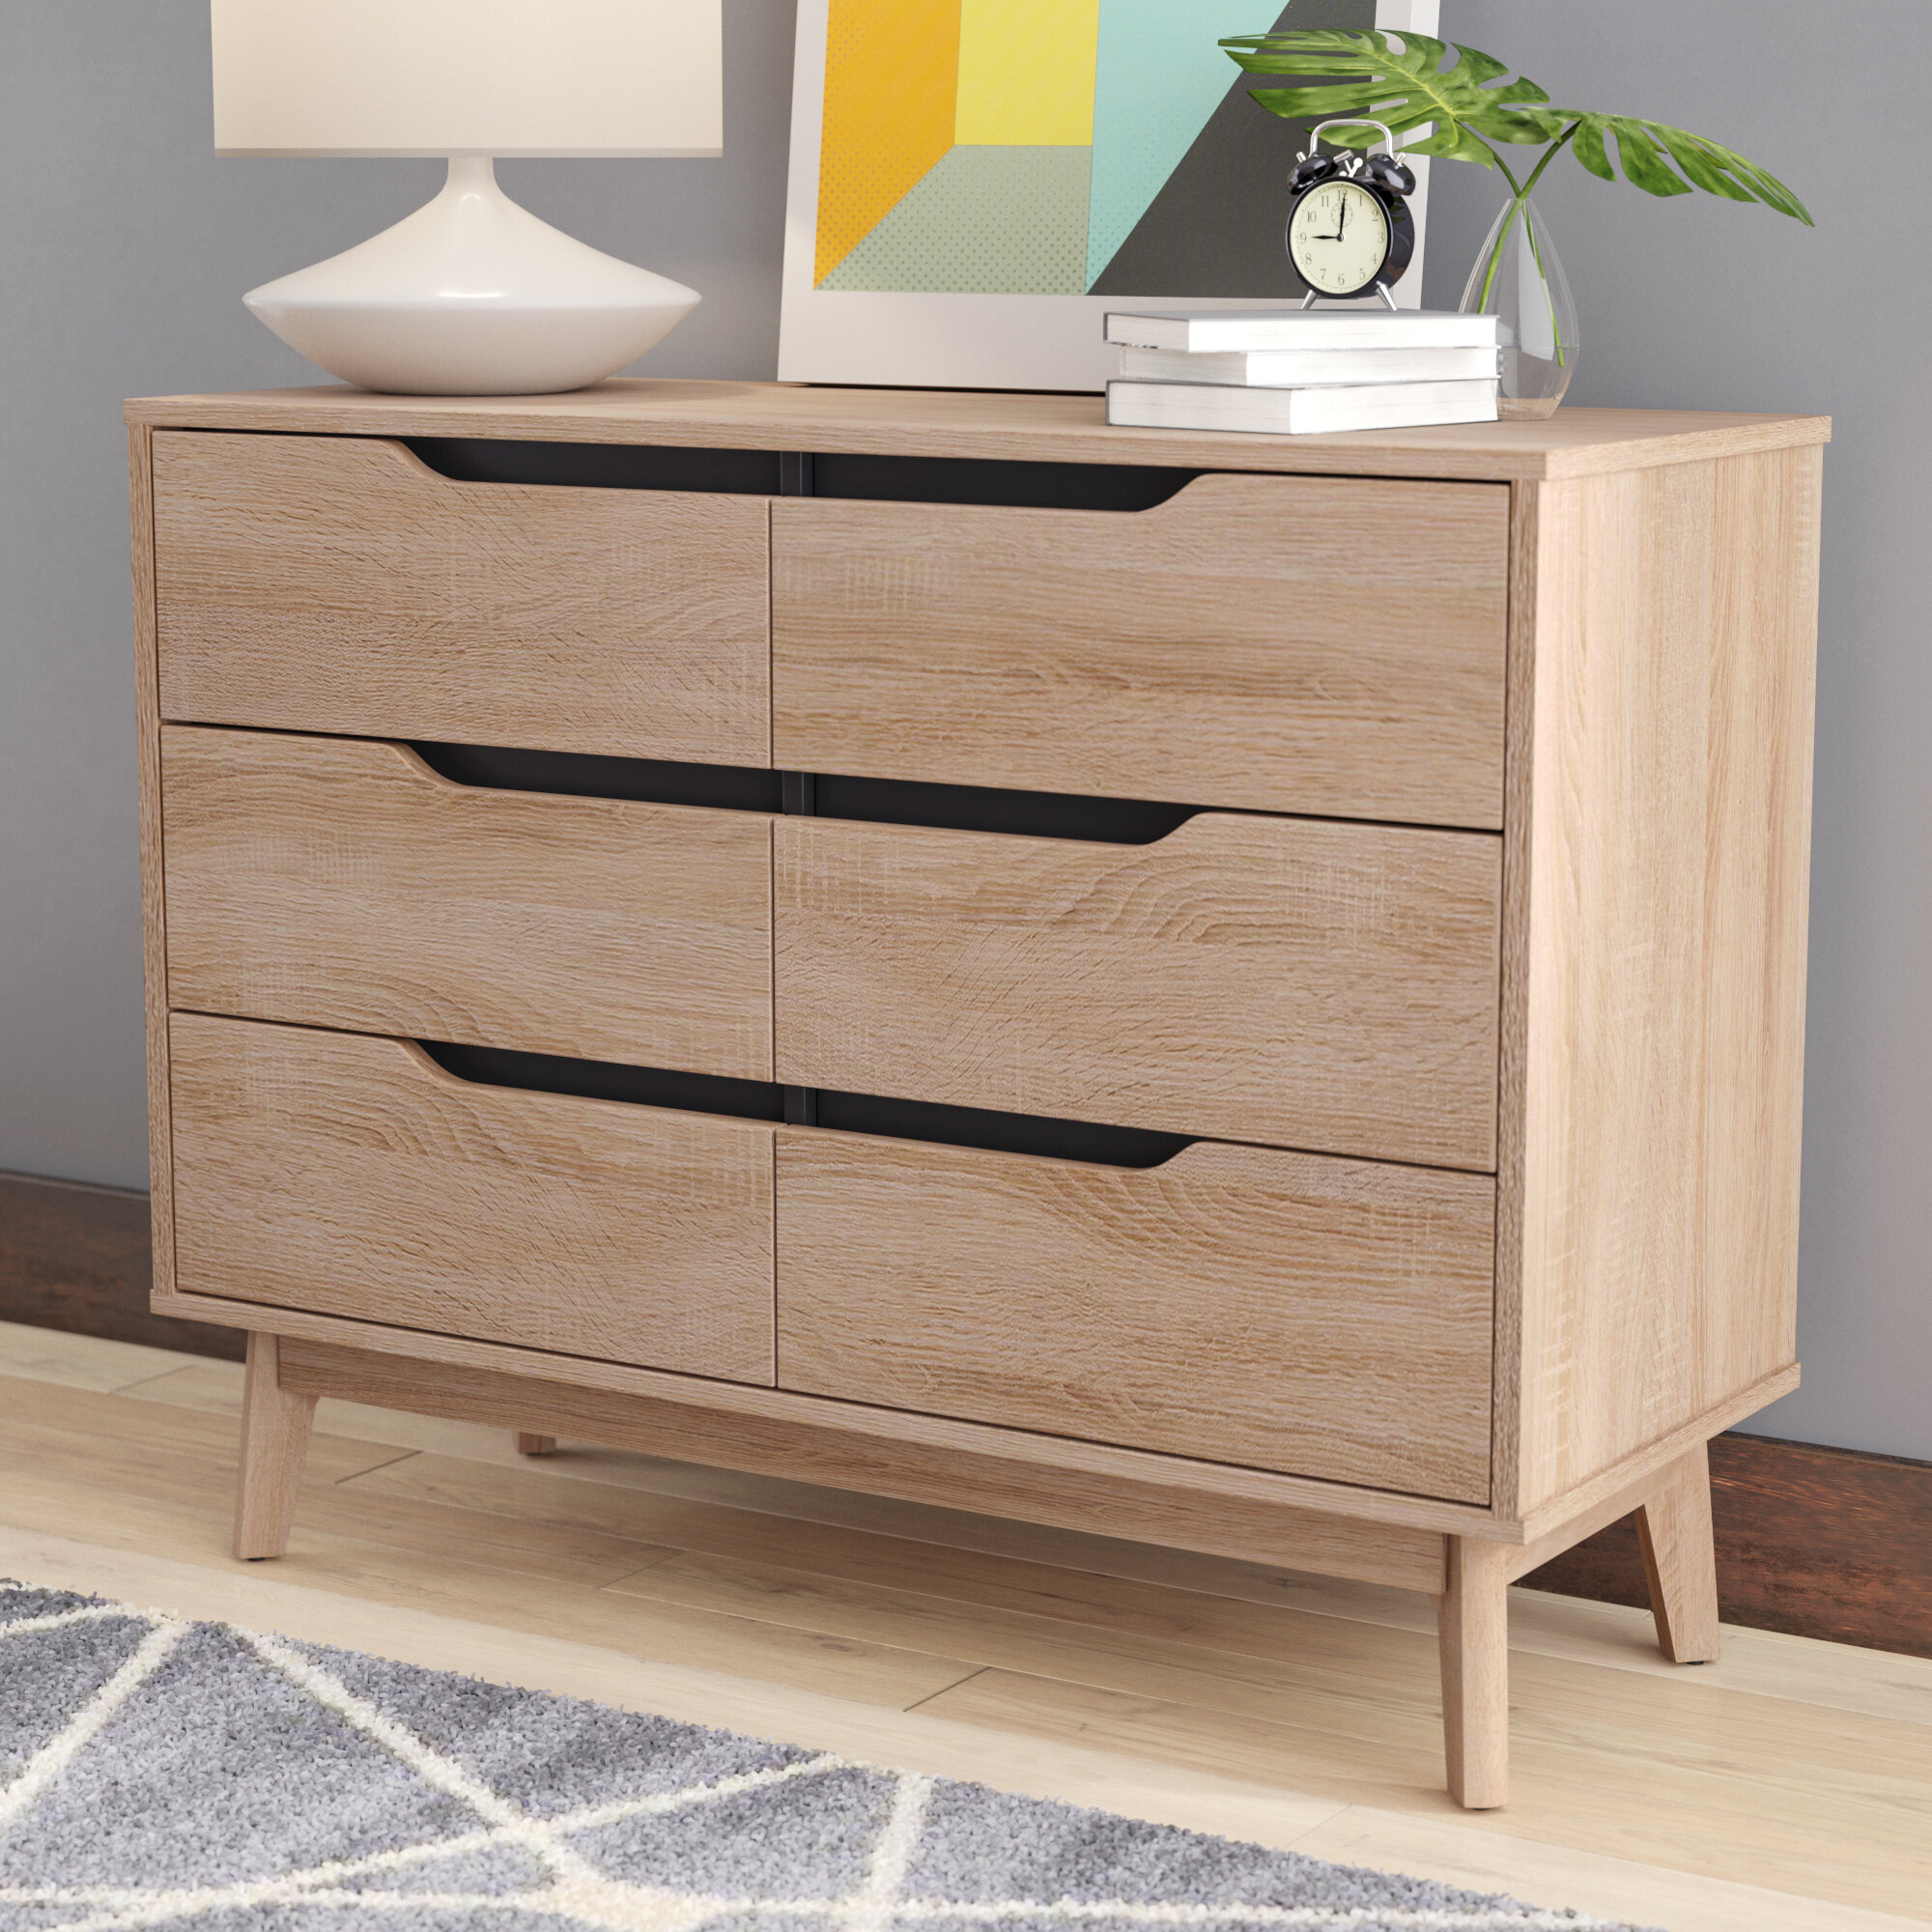 dresser aspen drawers promo drawer chest of budget promotion offer